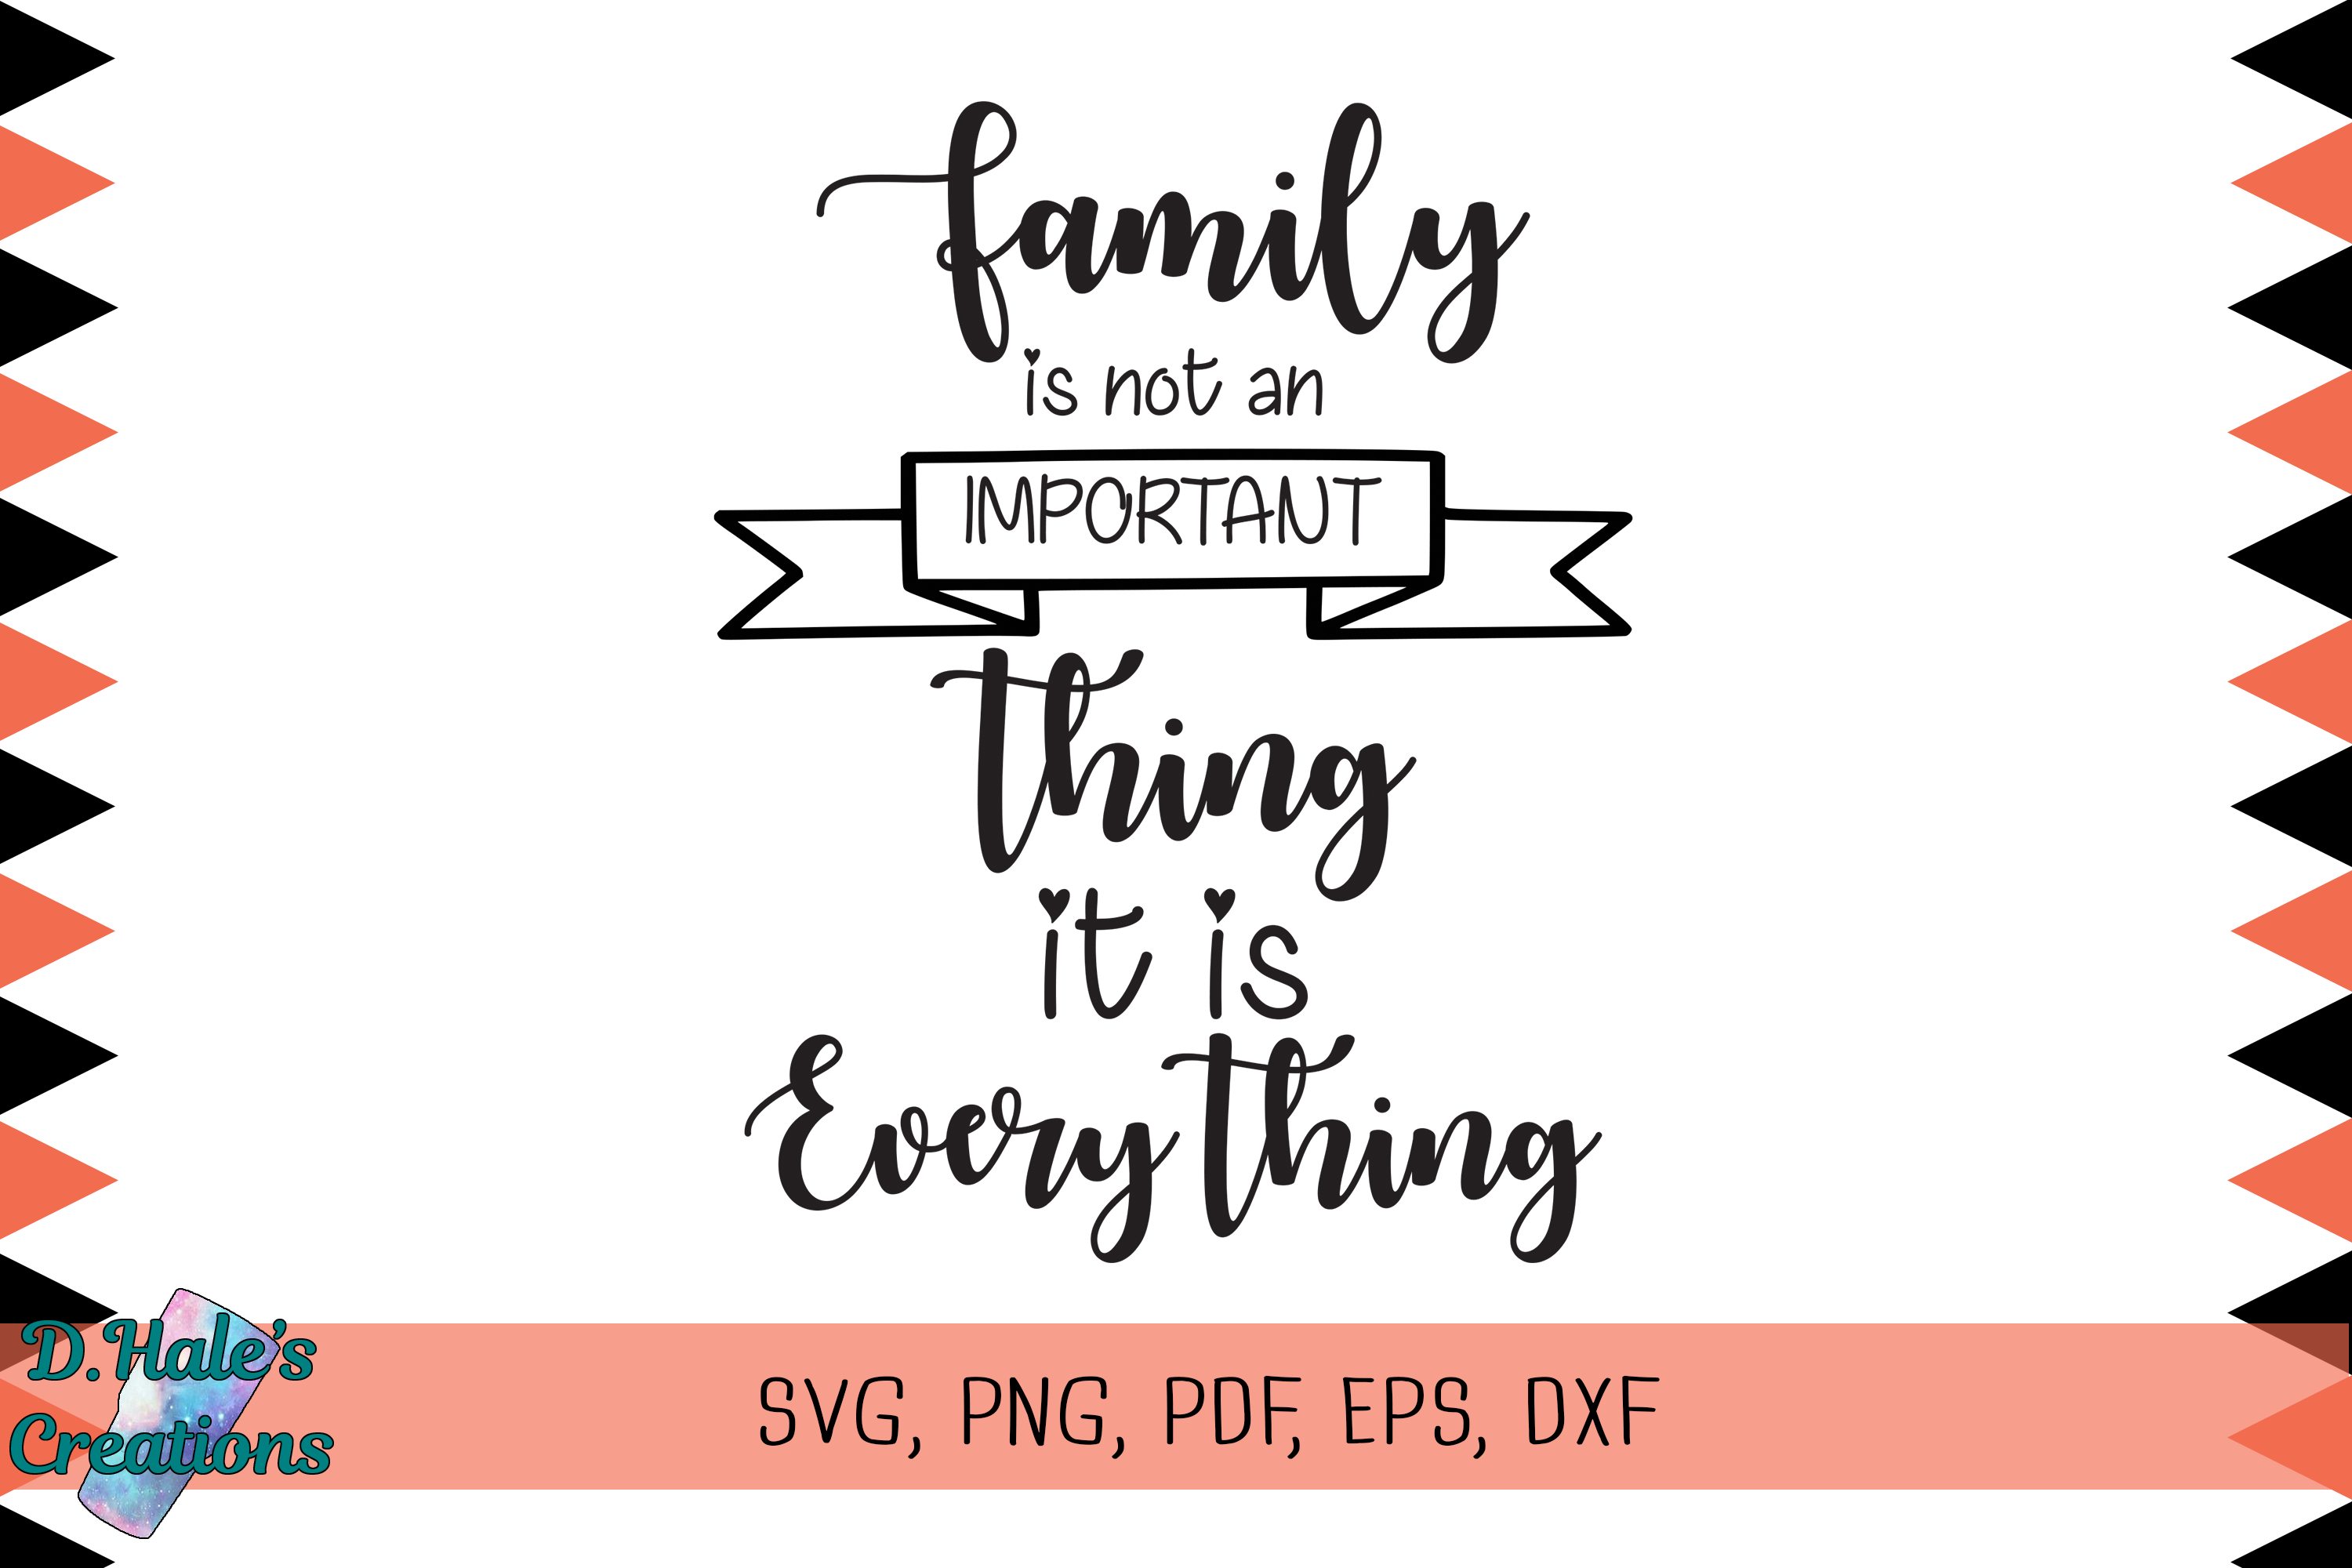 Download Free Family Is Everything Svg Graphic By D Hale S Creations for Cricut Explore, Silhouette and other cutting machines.